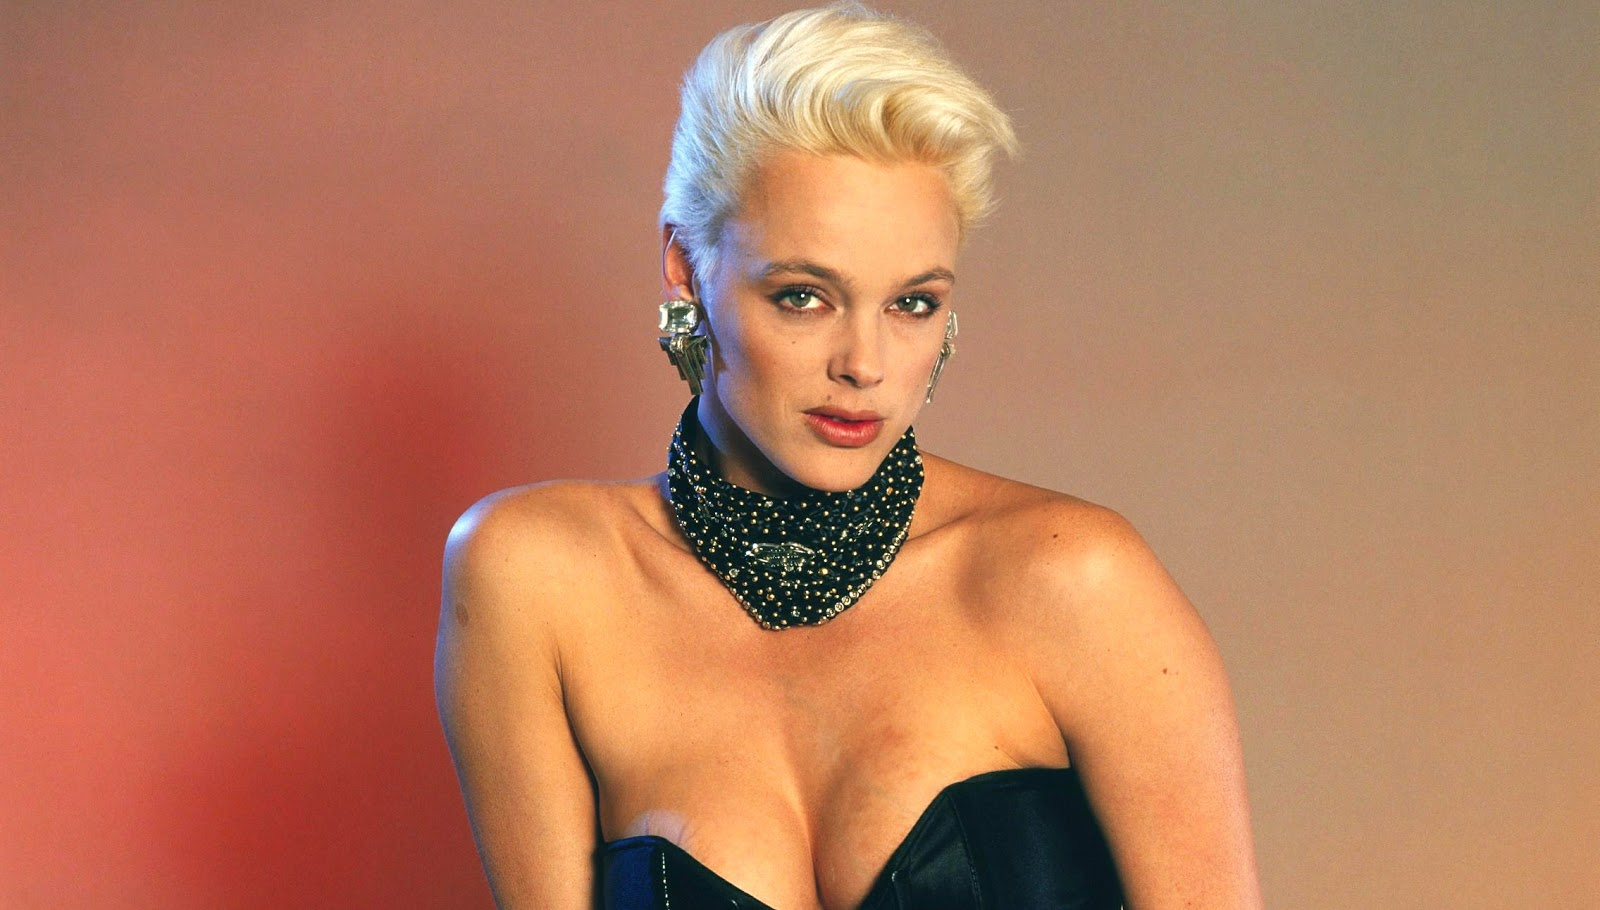 Brigitte nielsen porn video